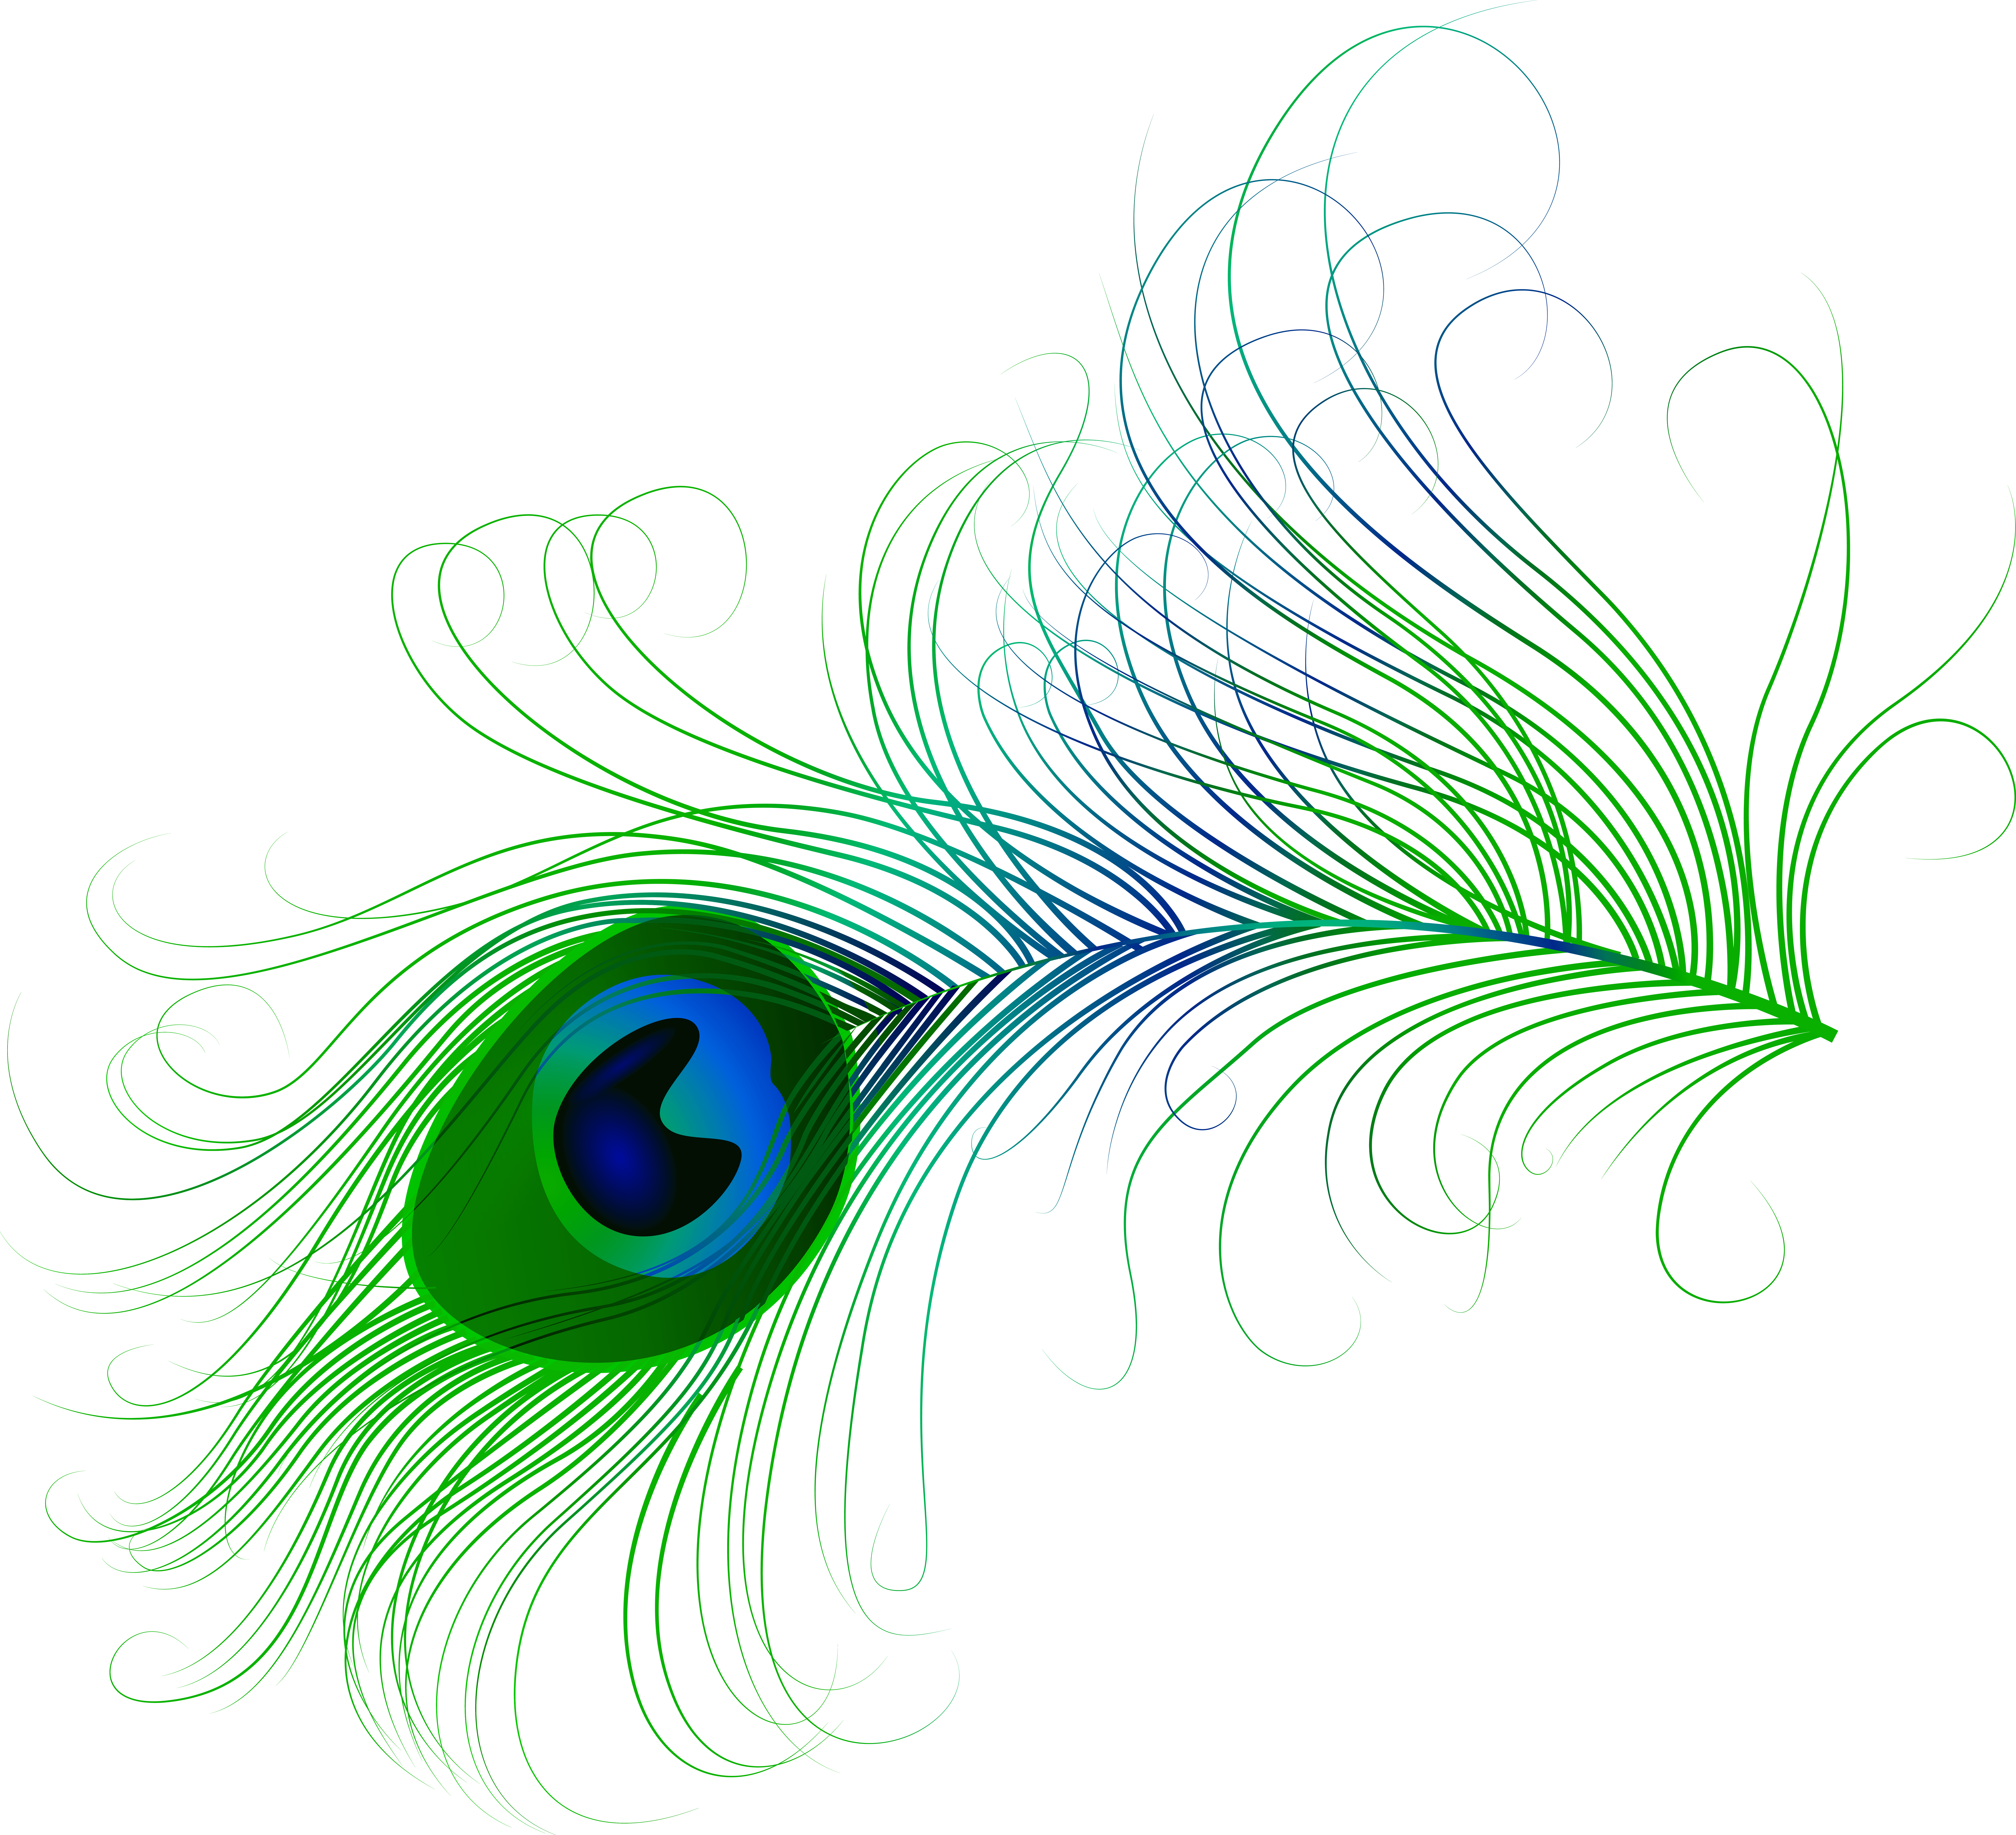 Png clip art image. Flutes clipart peacock feather